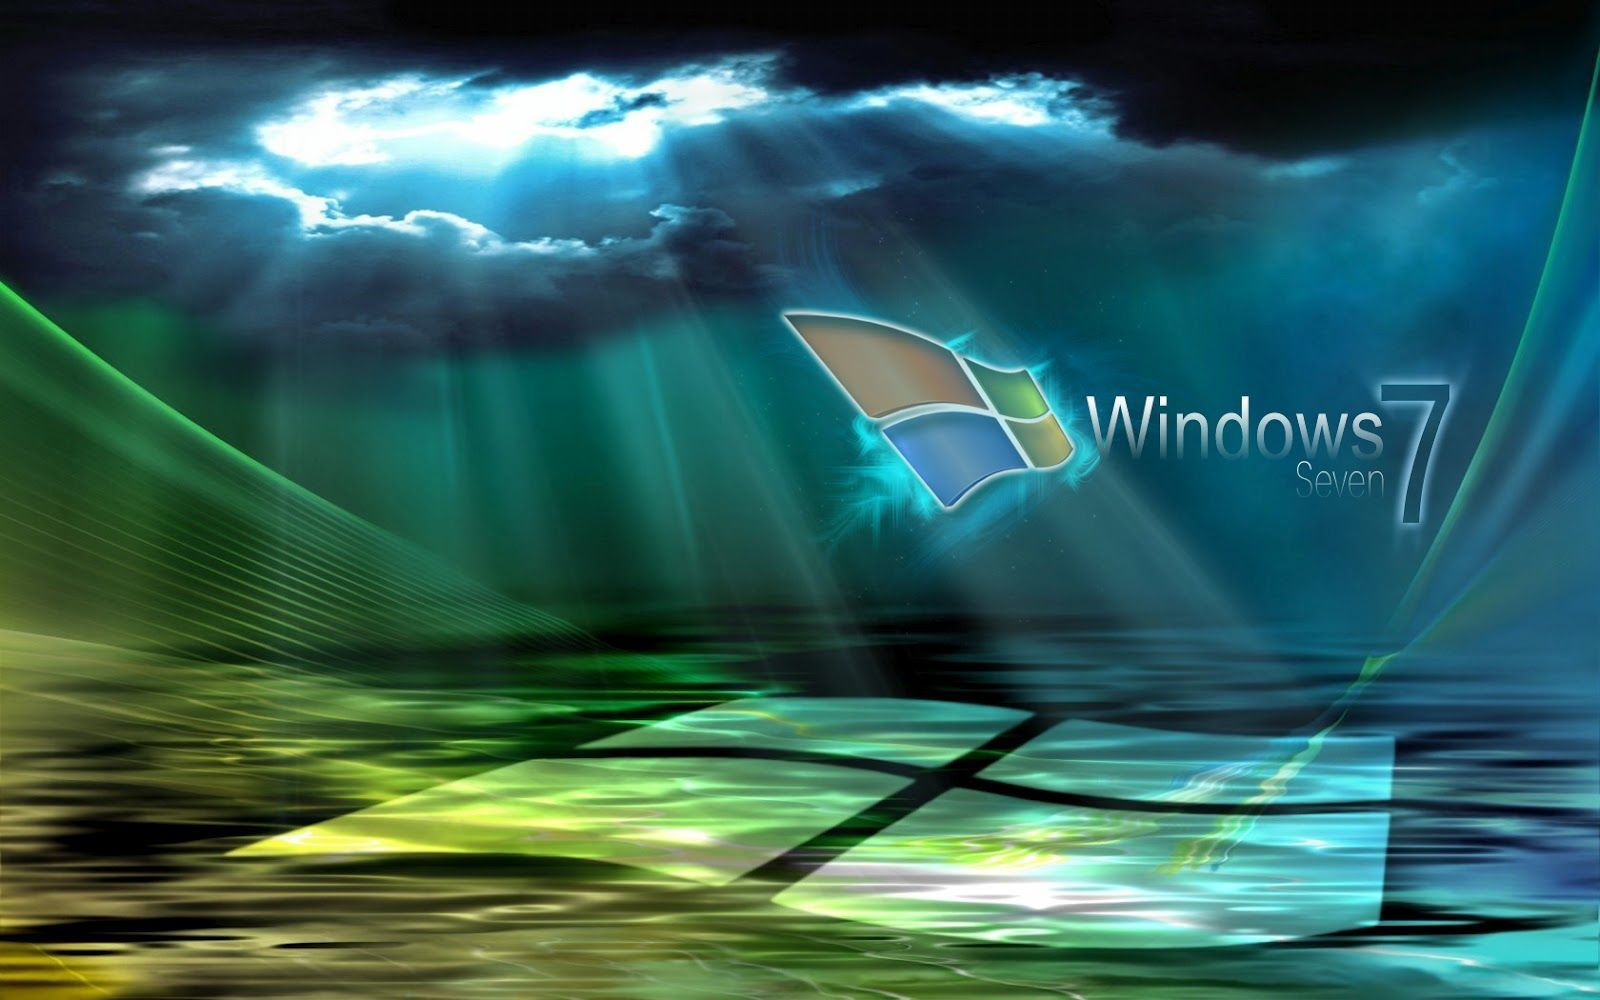 Best Windows Wallpapers in HD